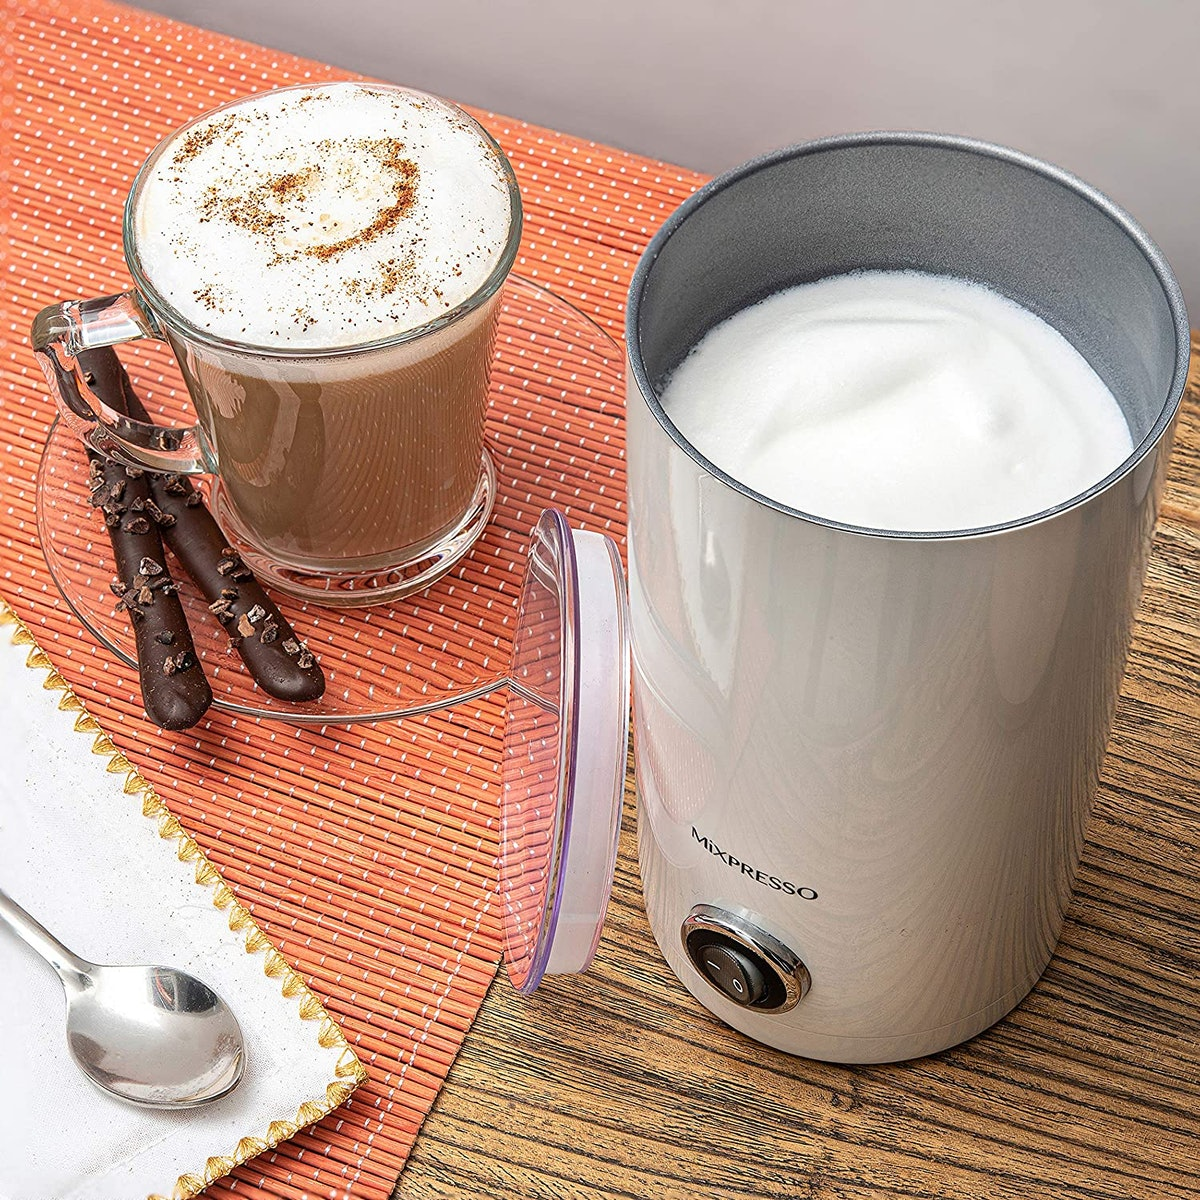 Mixpresso Electric Milk Frother